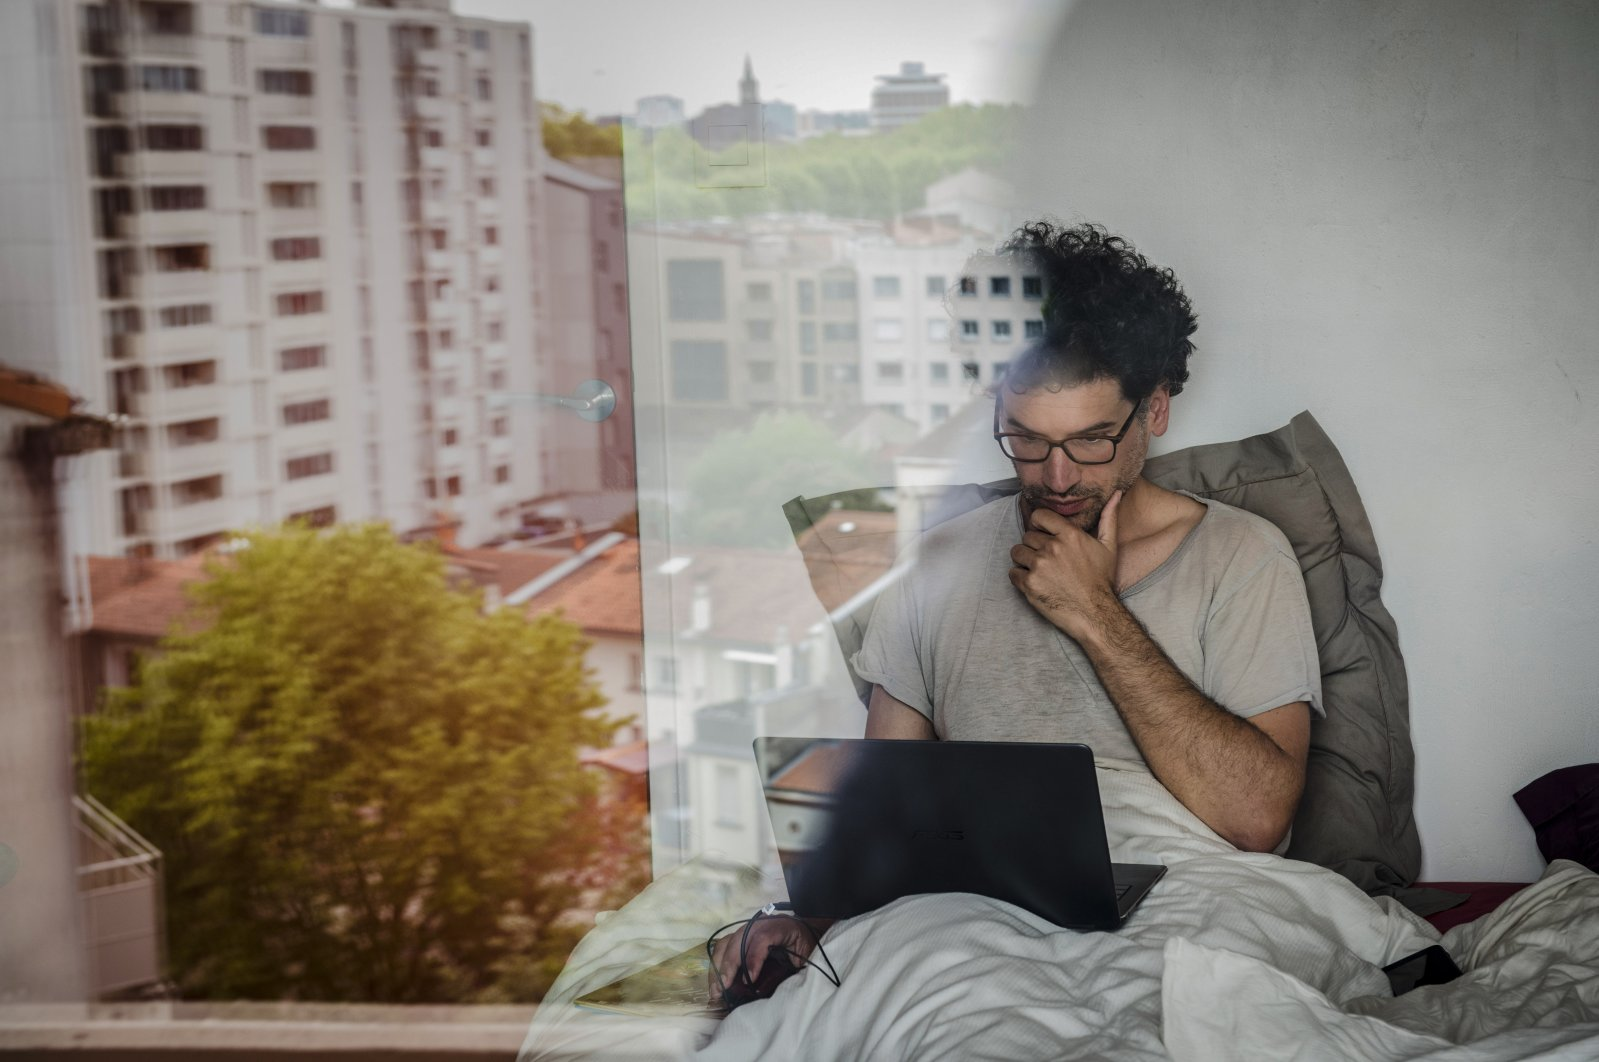 A teacher-researcher works in his bed on his computer in France, on April 18, 2020. (via Reuters)